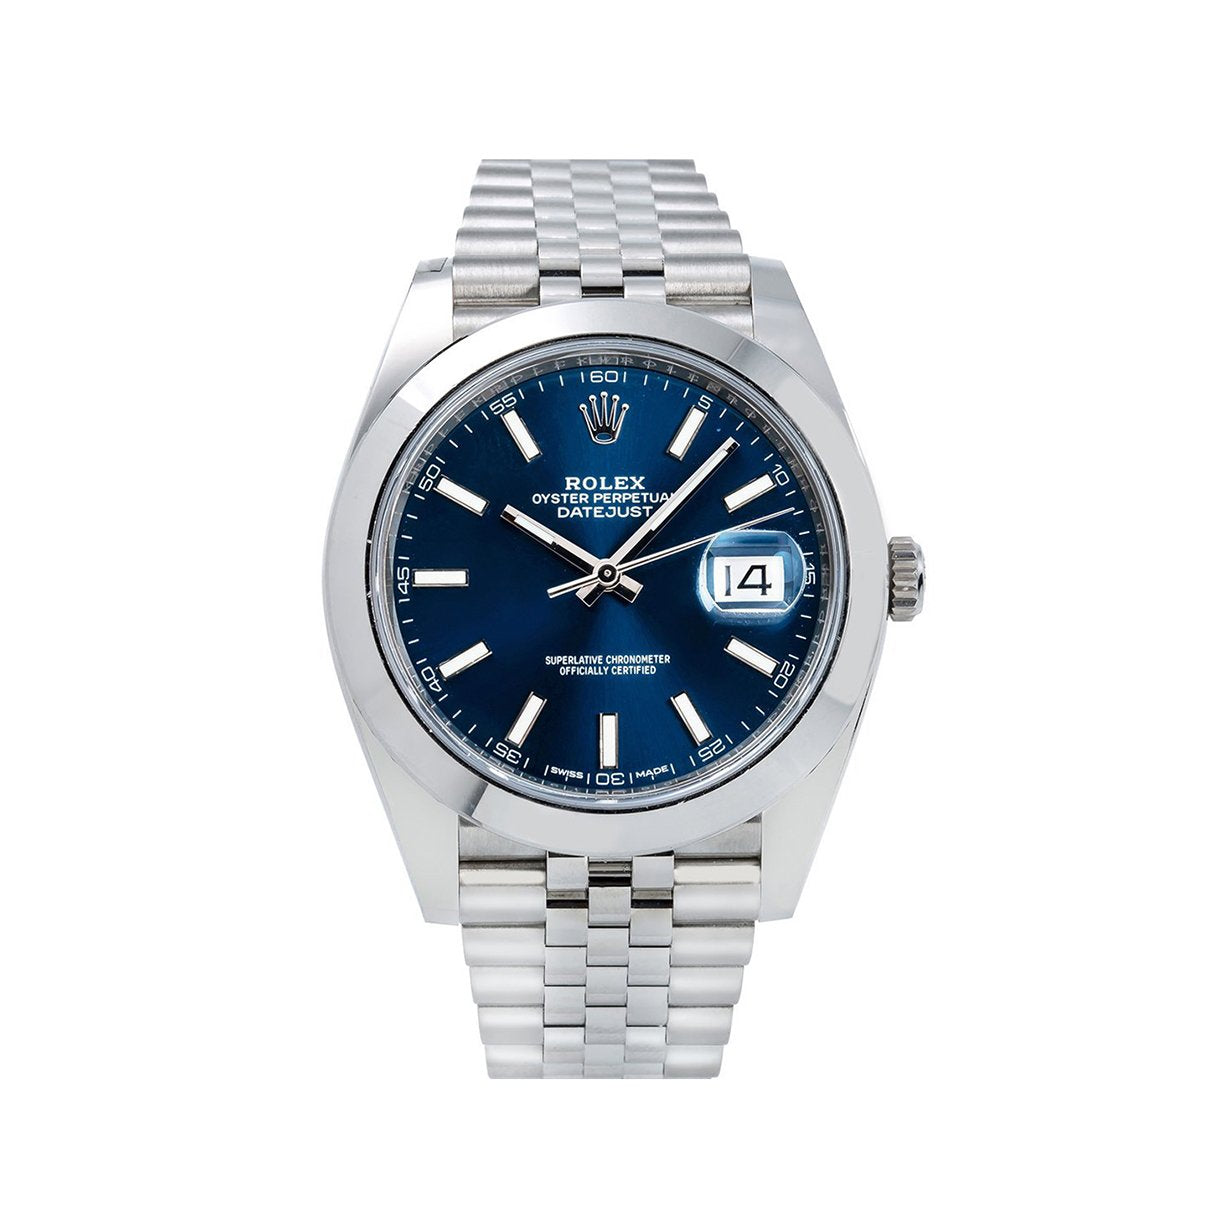 Rolex Datejust 126300 41MM Blue Dial With Stainless Steel Bracelet